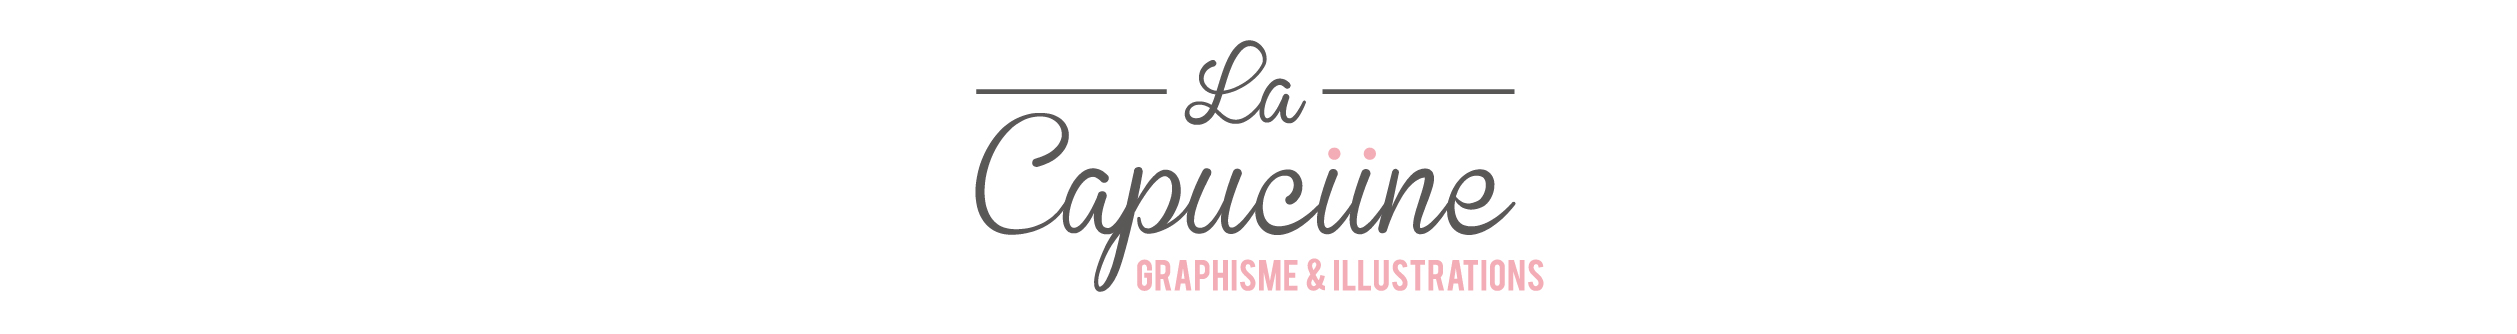 lacapuciine.com blog illustration